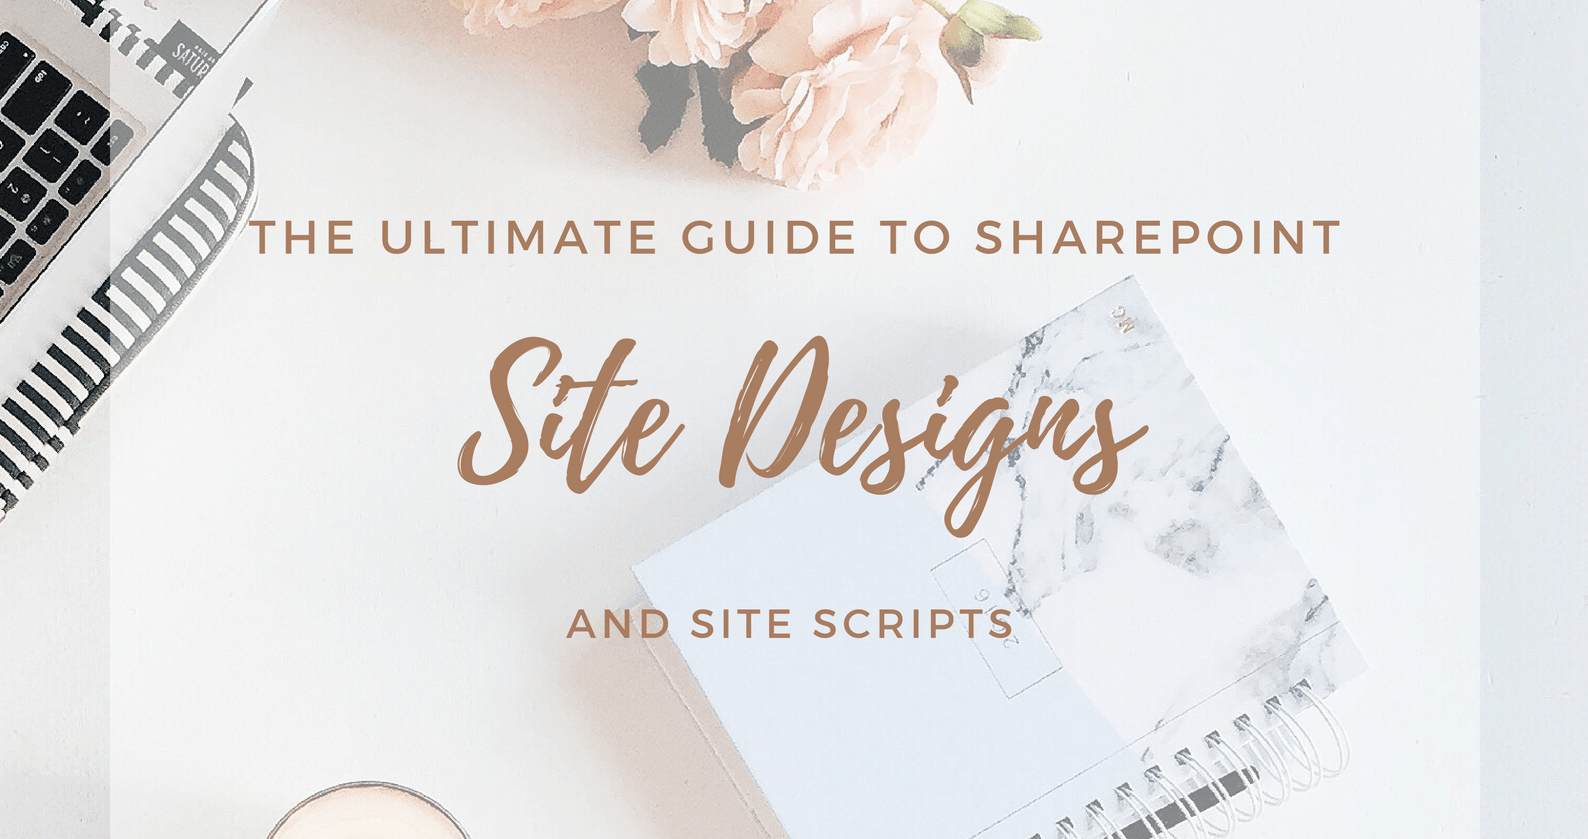 The Ultimate Guide to SharePoint Site Designs and Site Scripts